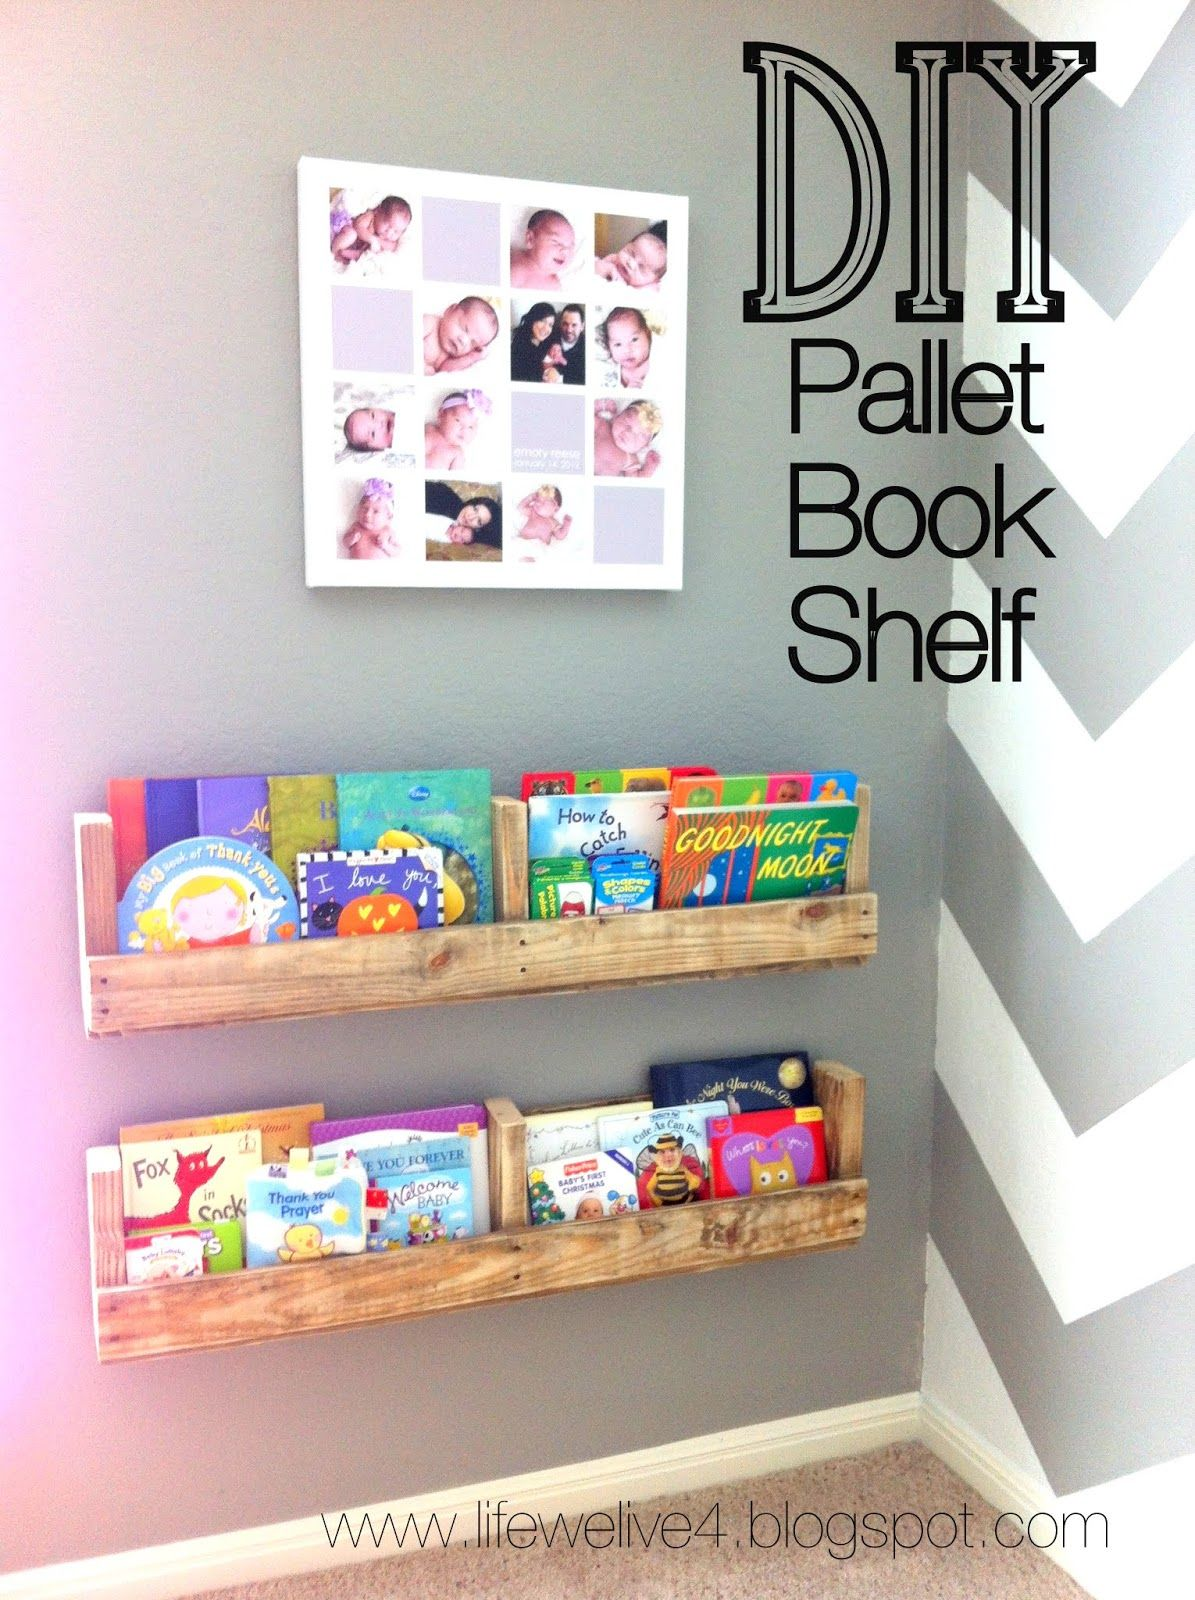 Pallet spice rack on pinterest pallet entertainment for How to make a spice rack out of pallets